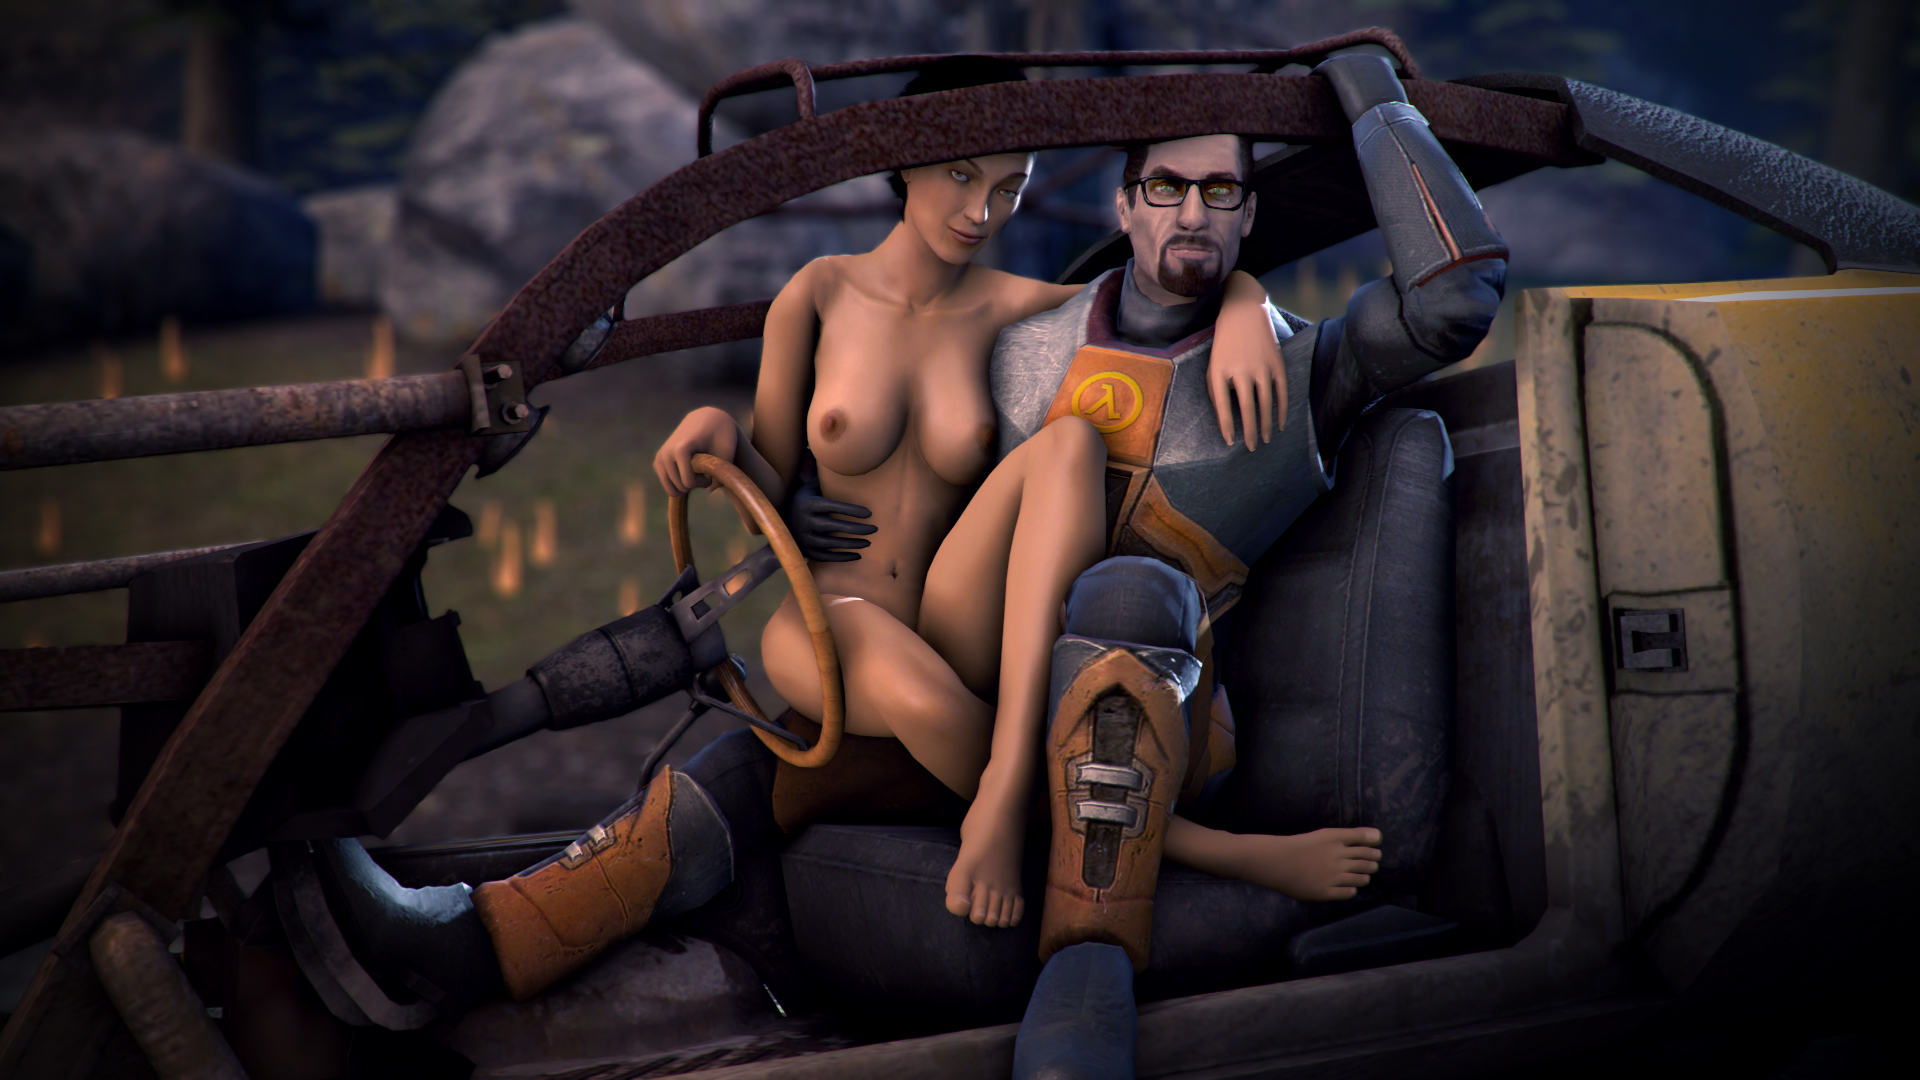 Alex from half life sex softcore images